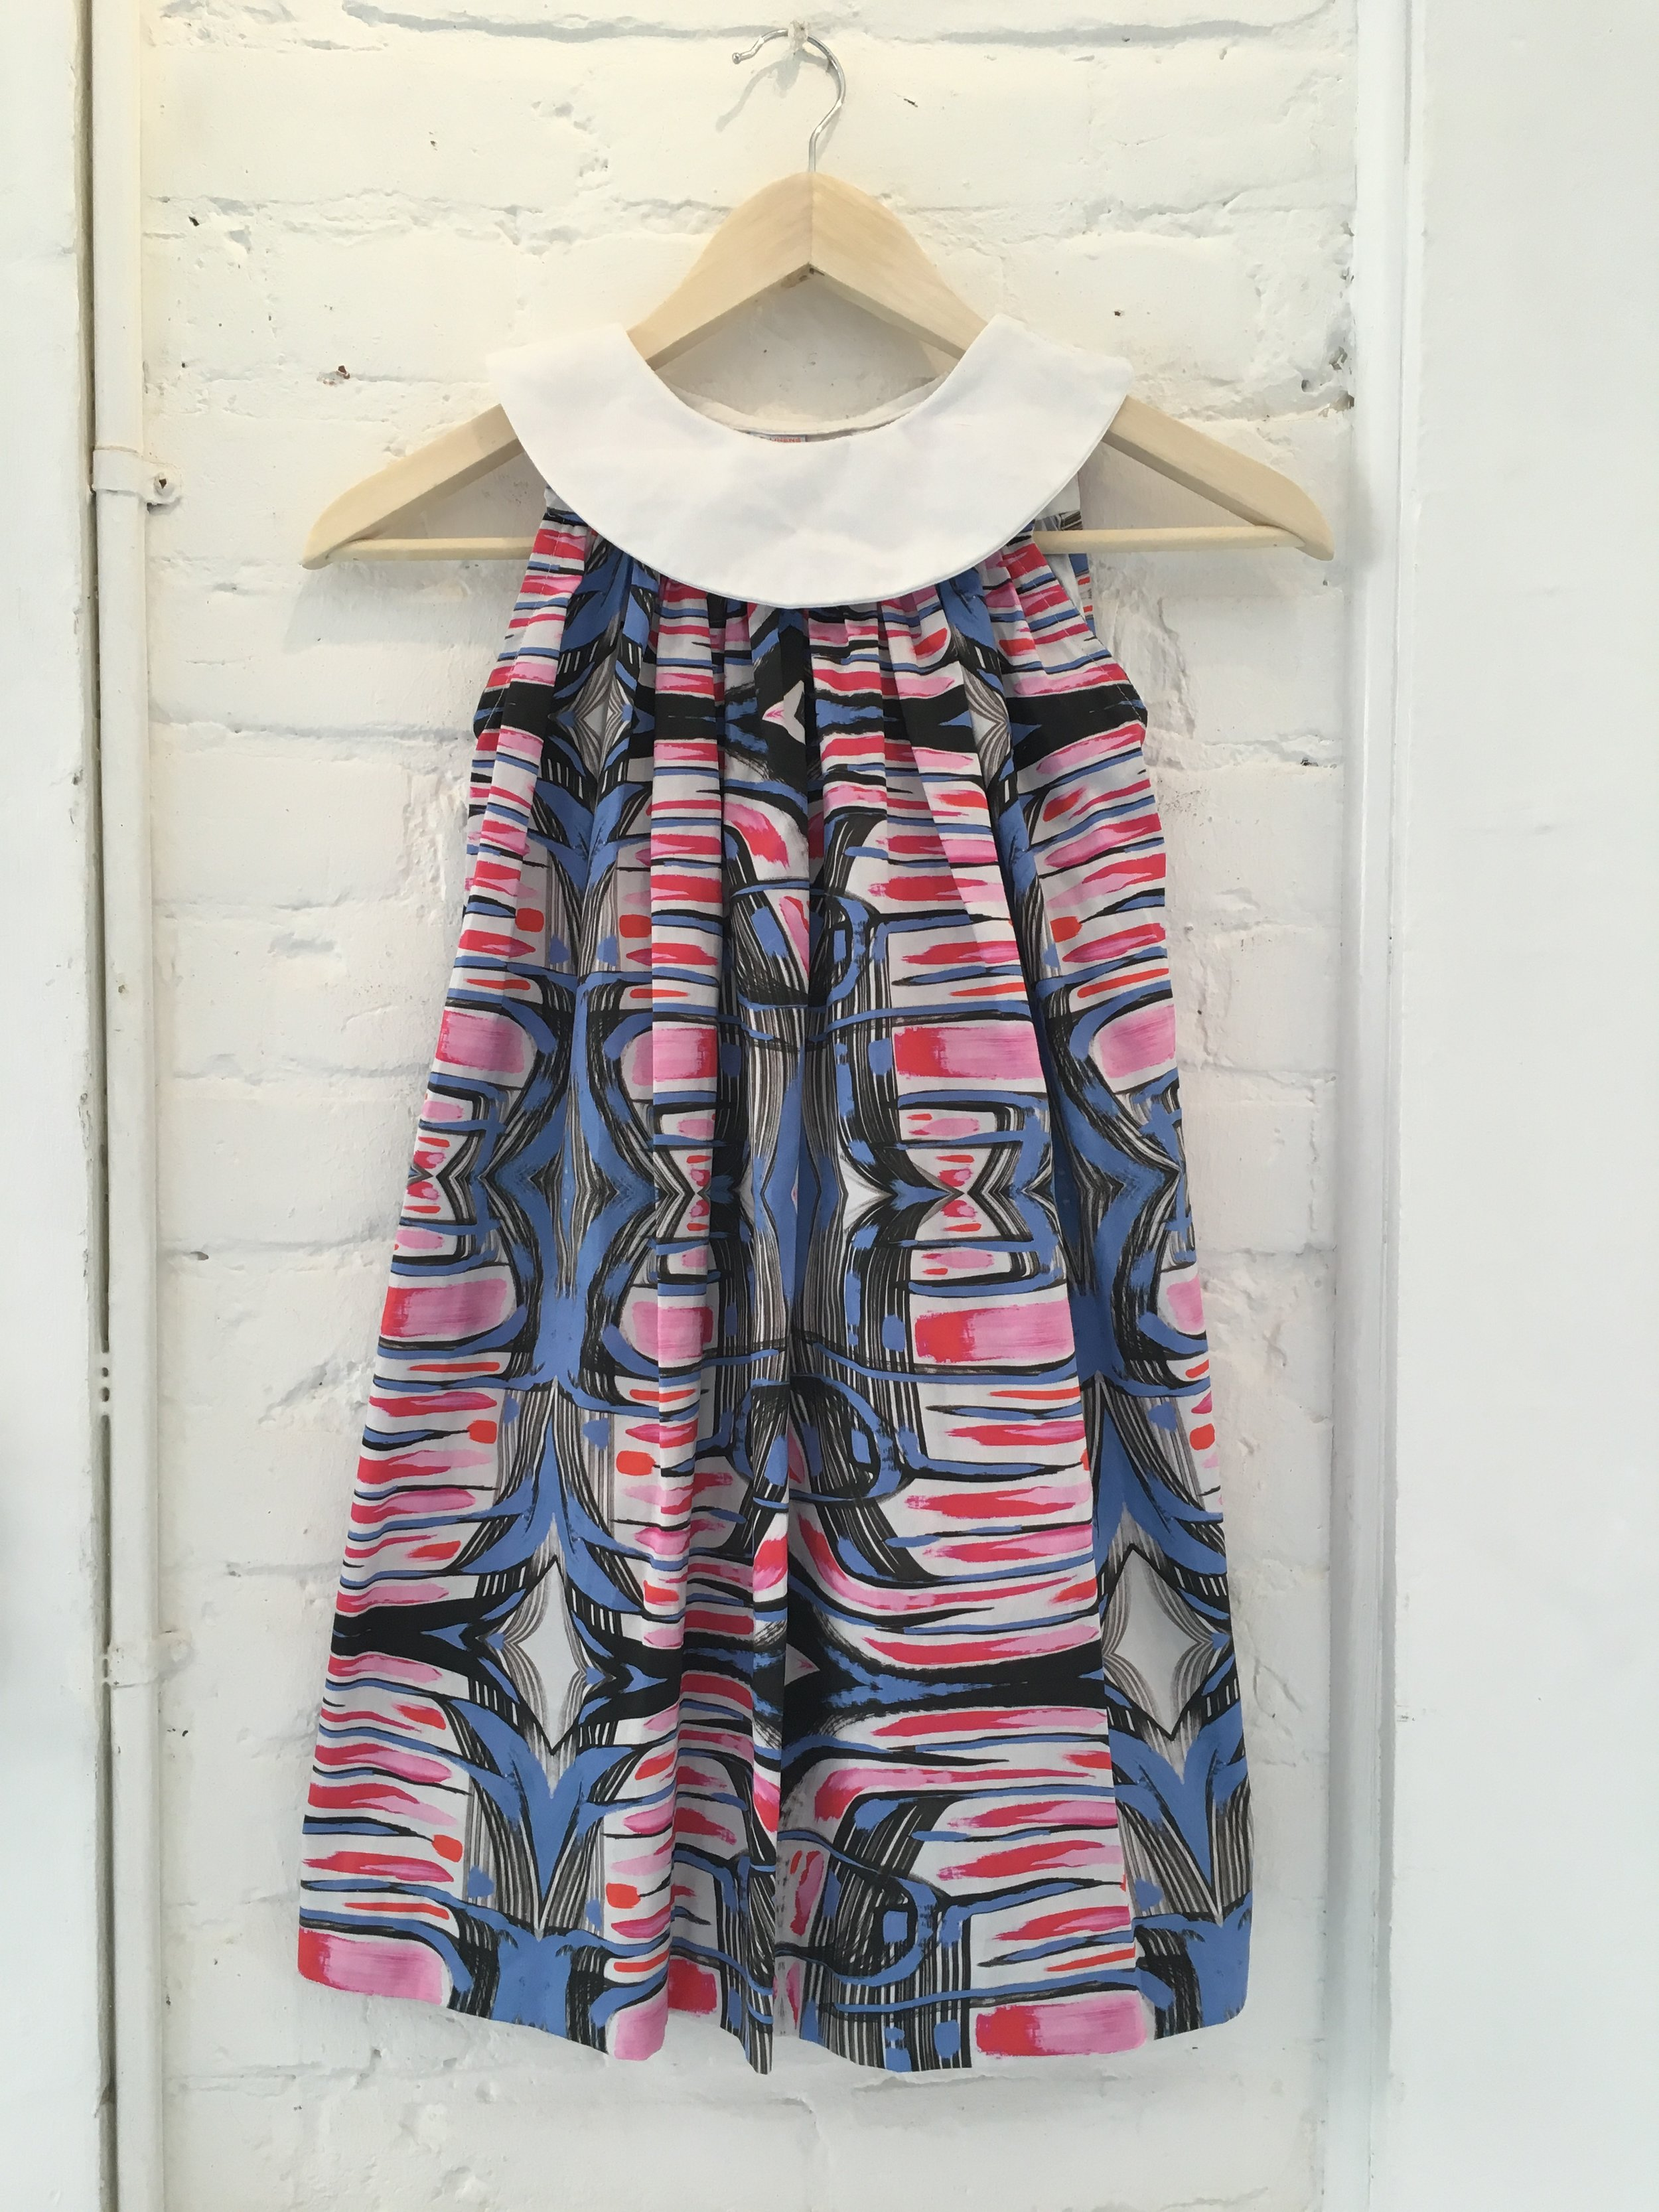 """Sally"" sundress, available size 2T-10, $135"